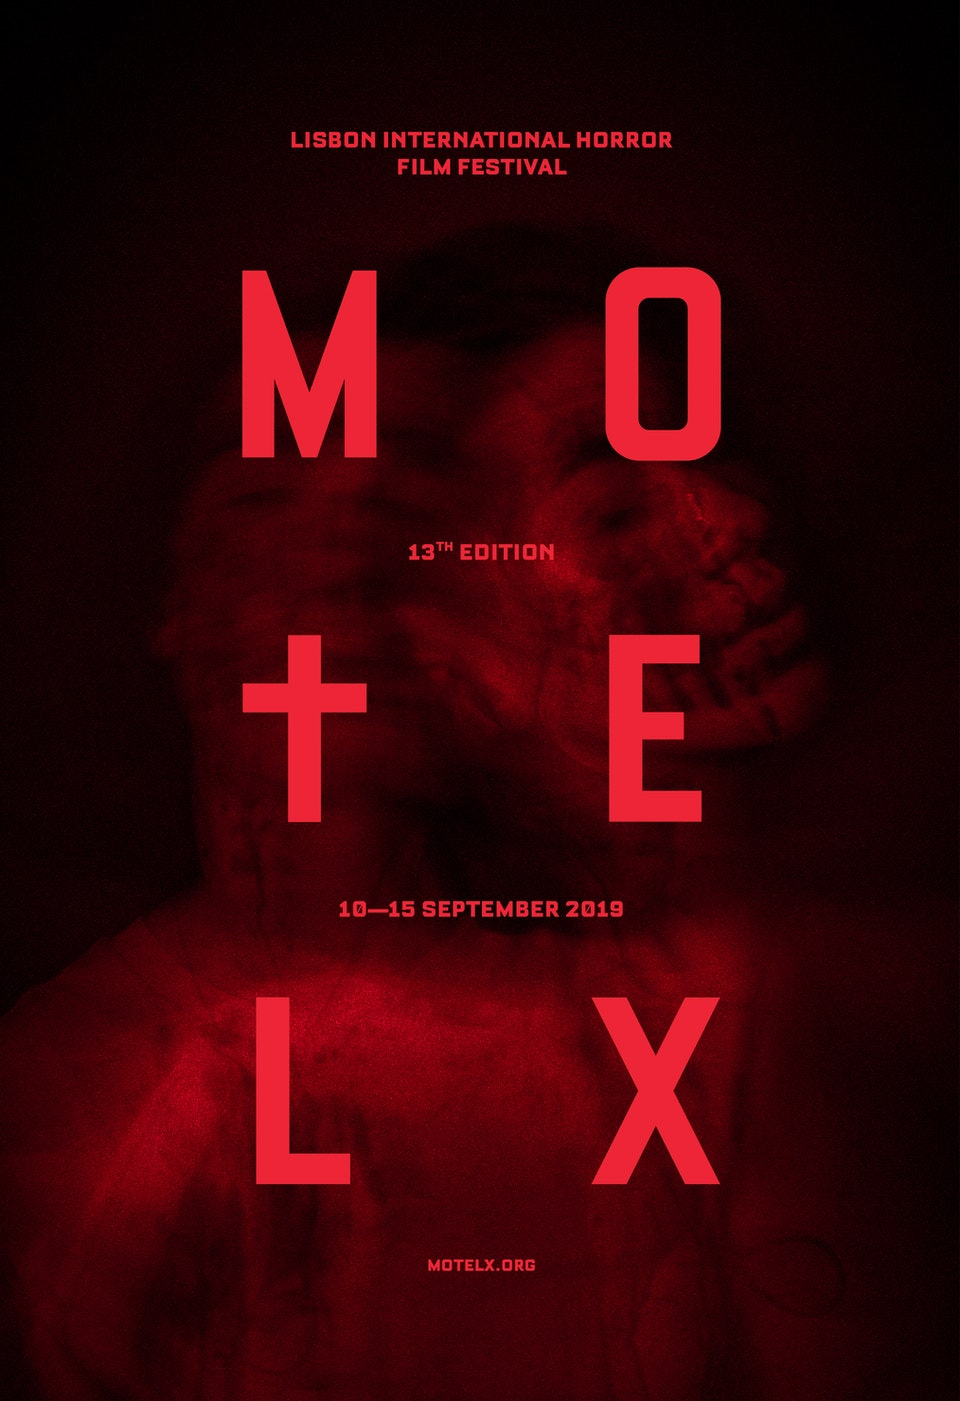 RUI VIEIRA - Film Director, Photographer & Creative Director - Motelx - Lisbon International Horror Film Festival